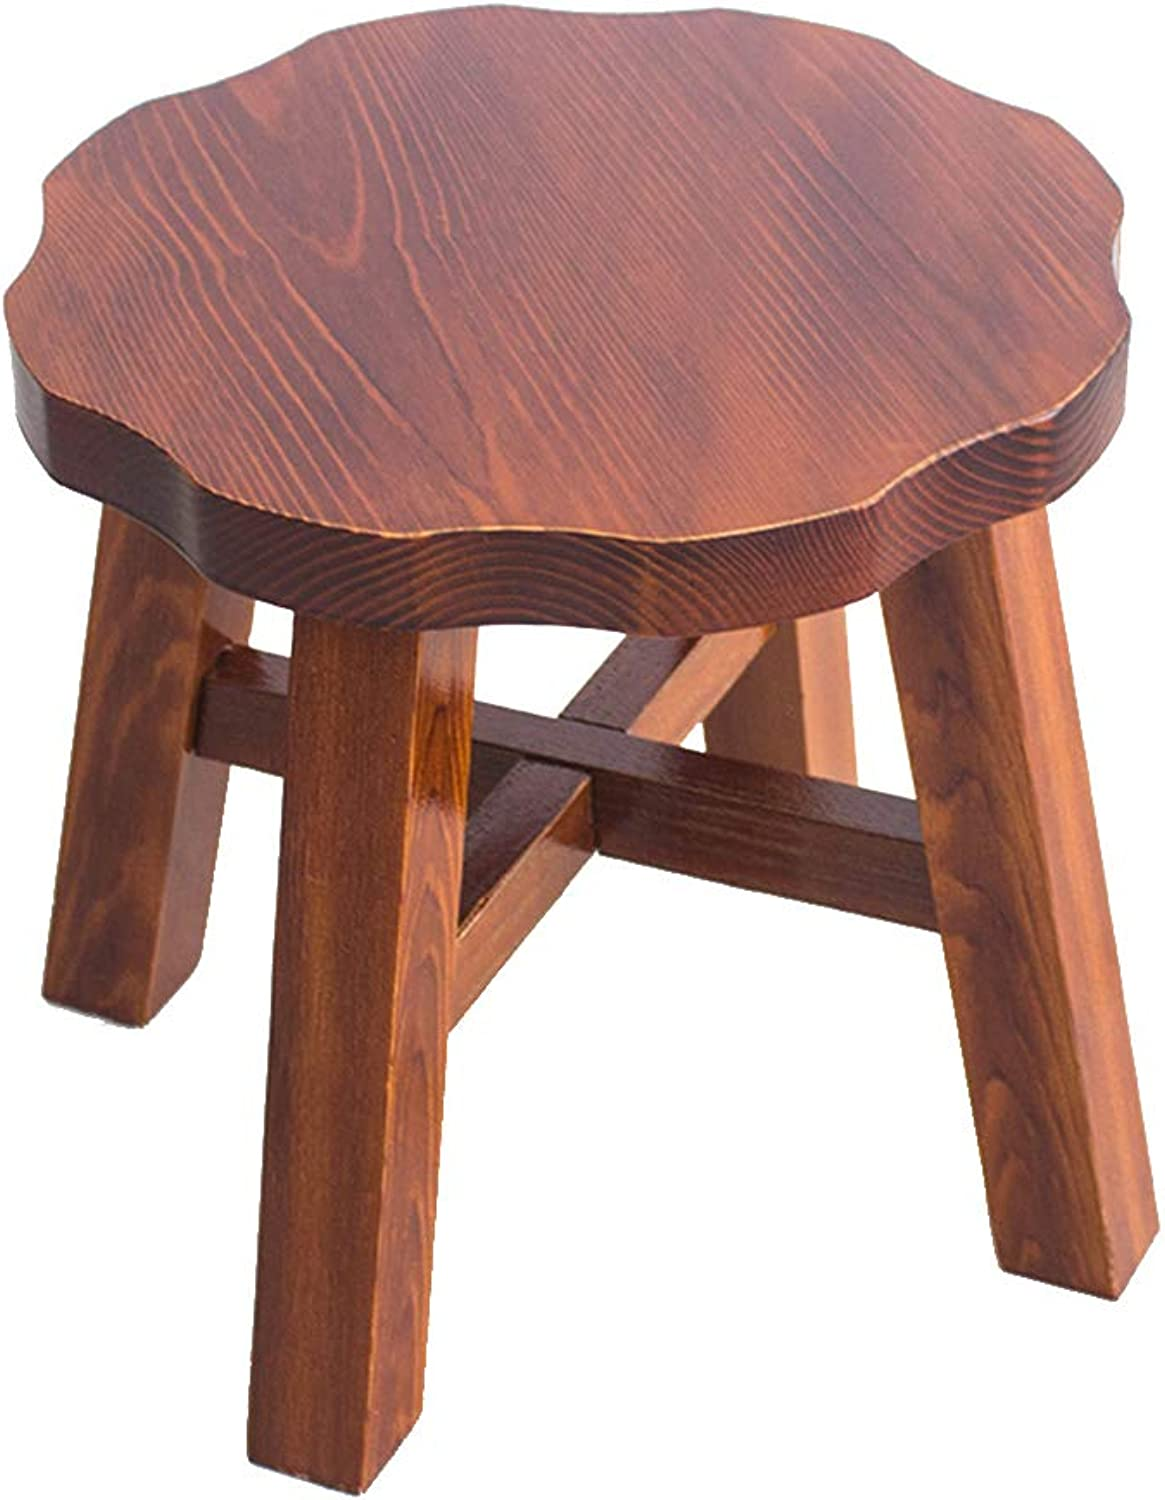 Living Room Home Stool Creative Solid Wood Adult Small Bench Wooden Stool (color   B)